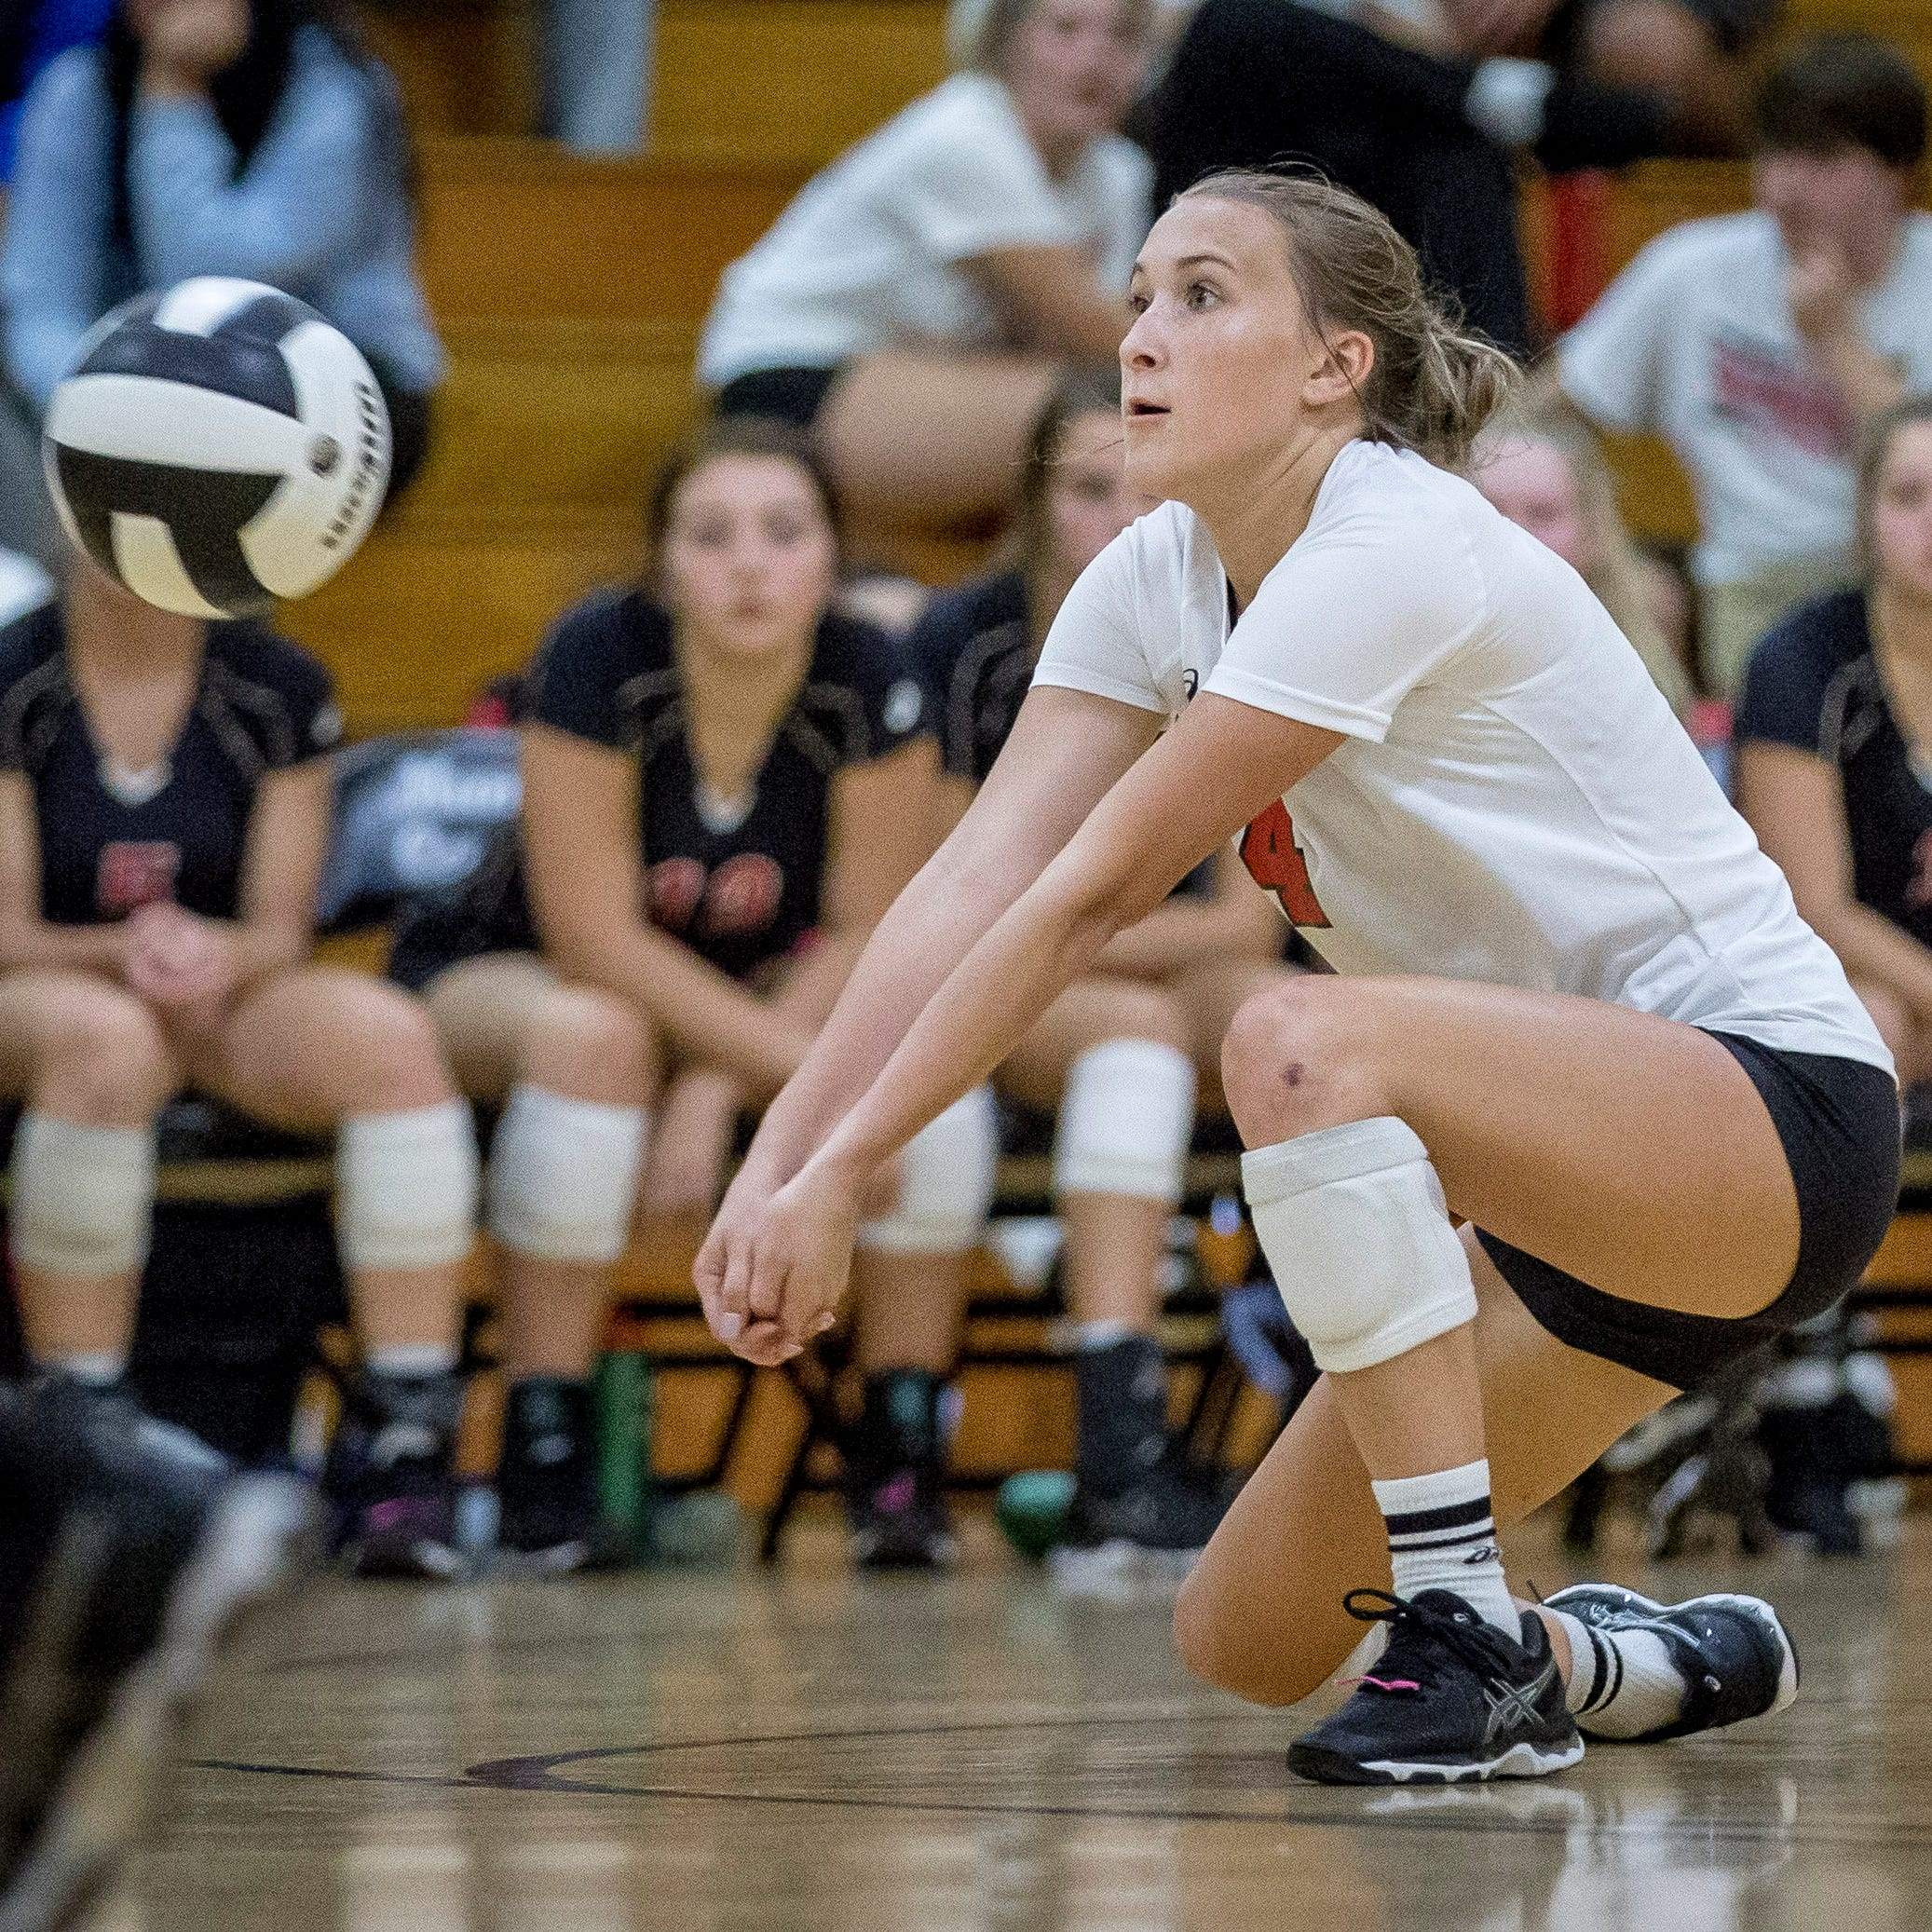 Delaware County volleyball: 4 teams tune up for tourney with wins